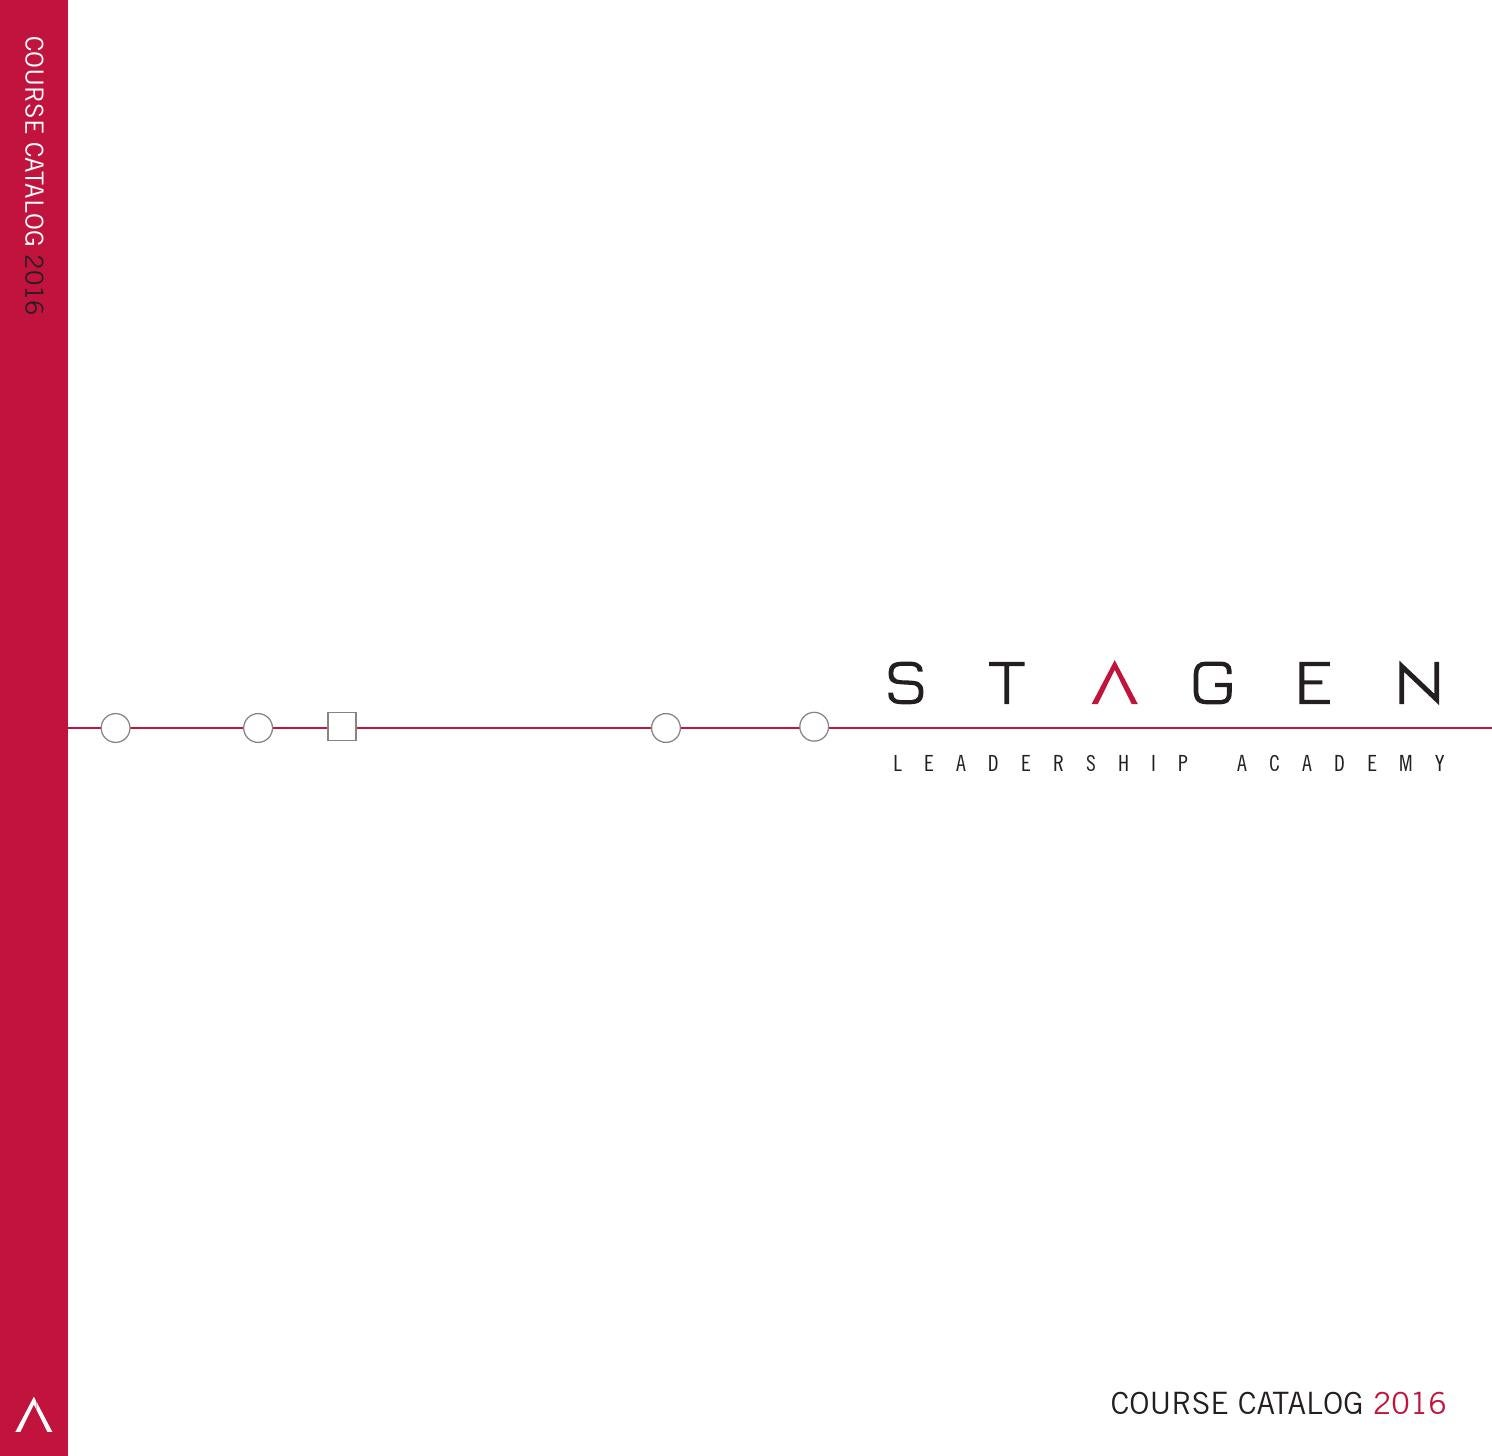 course catalog by stagen issuu